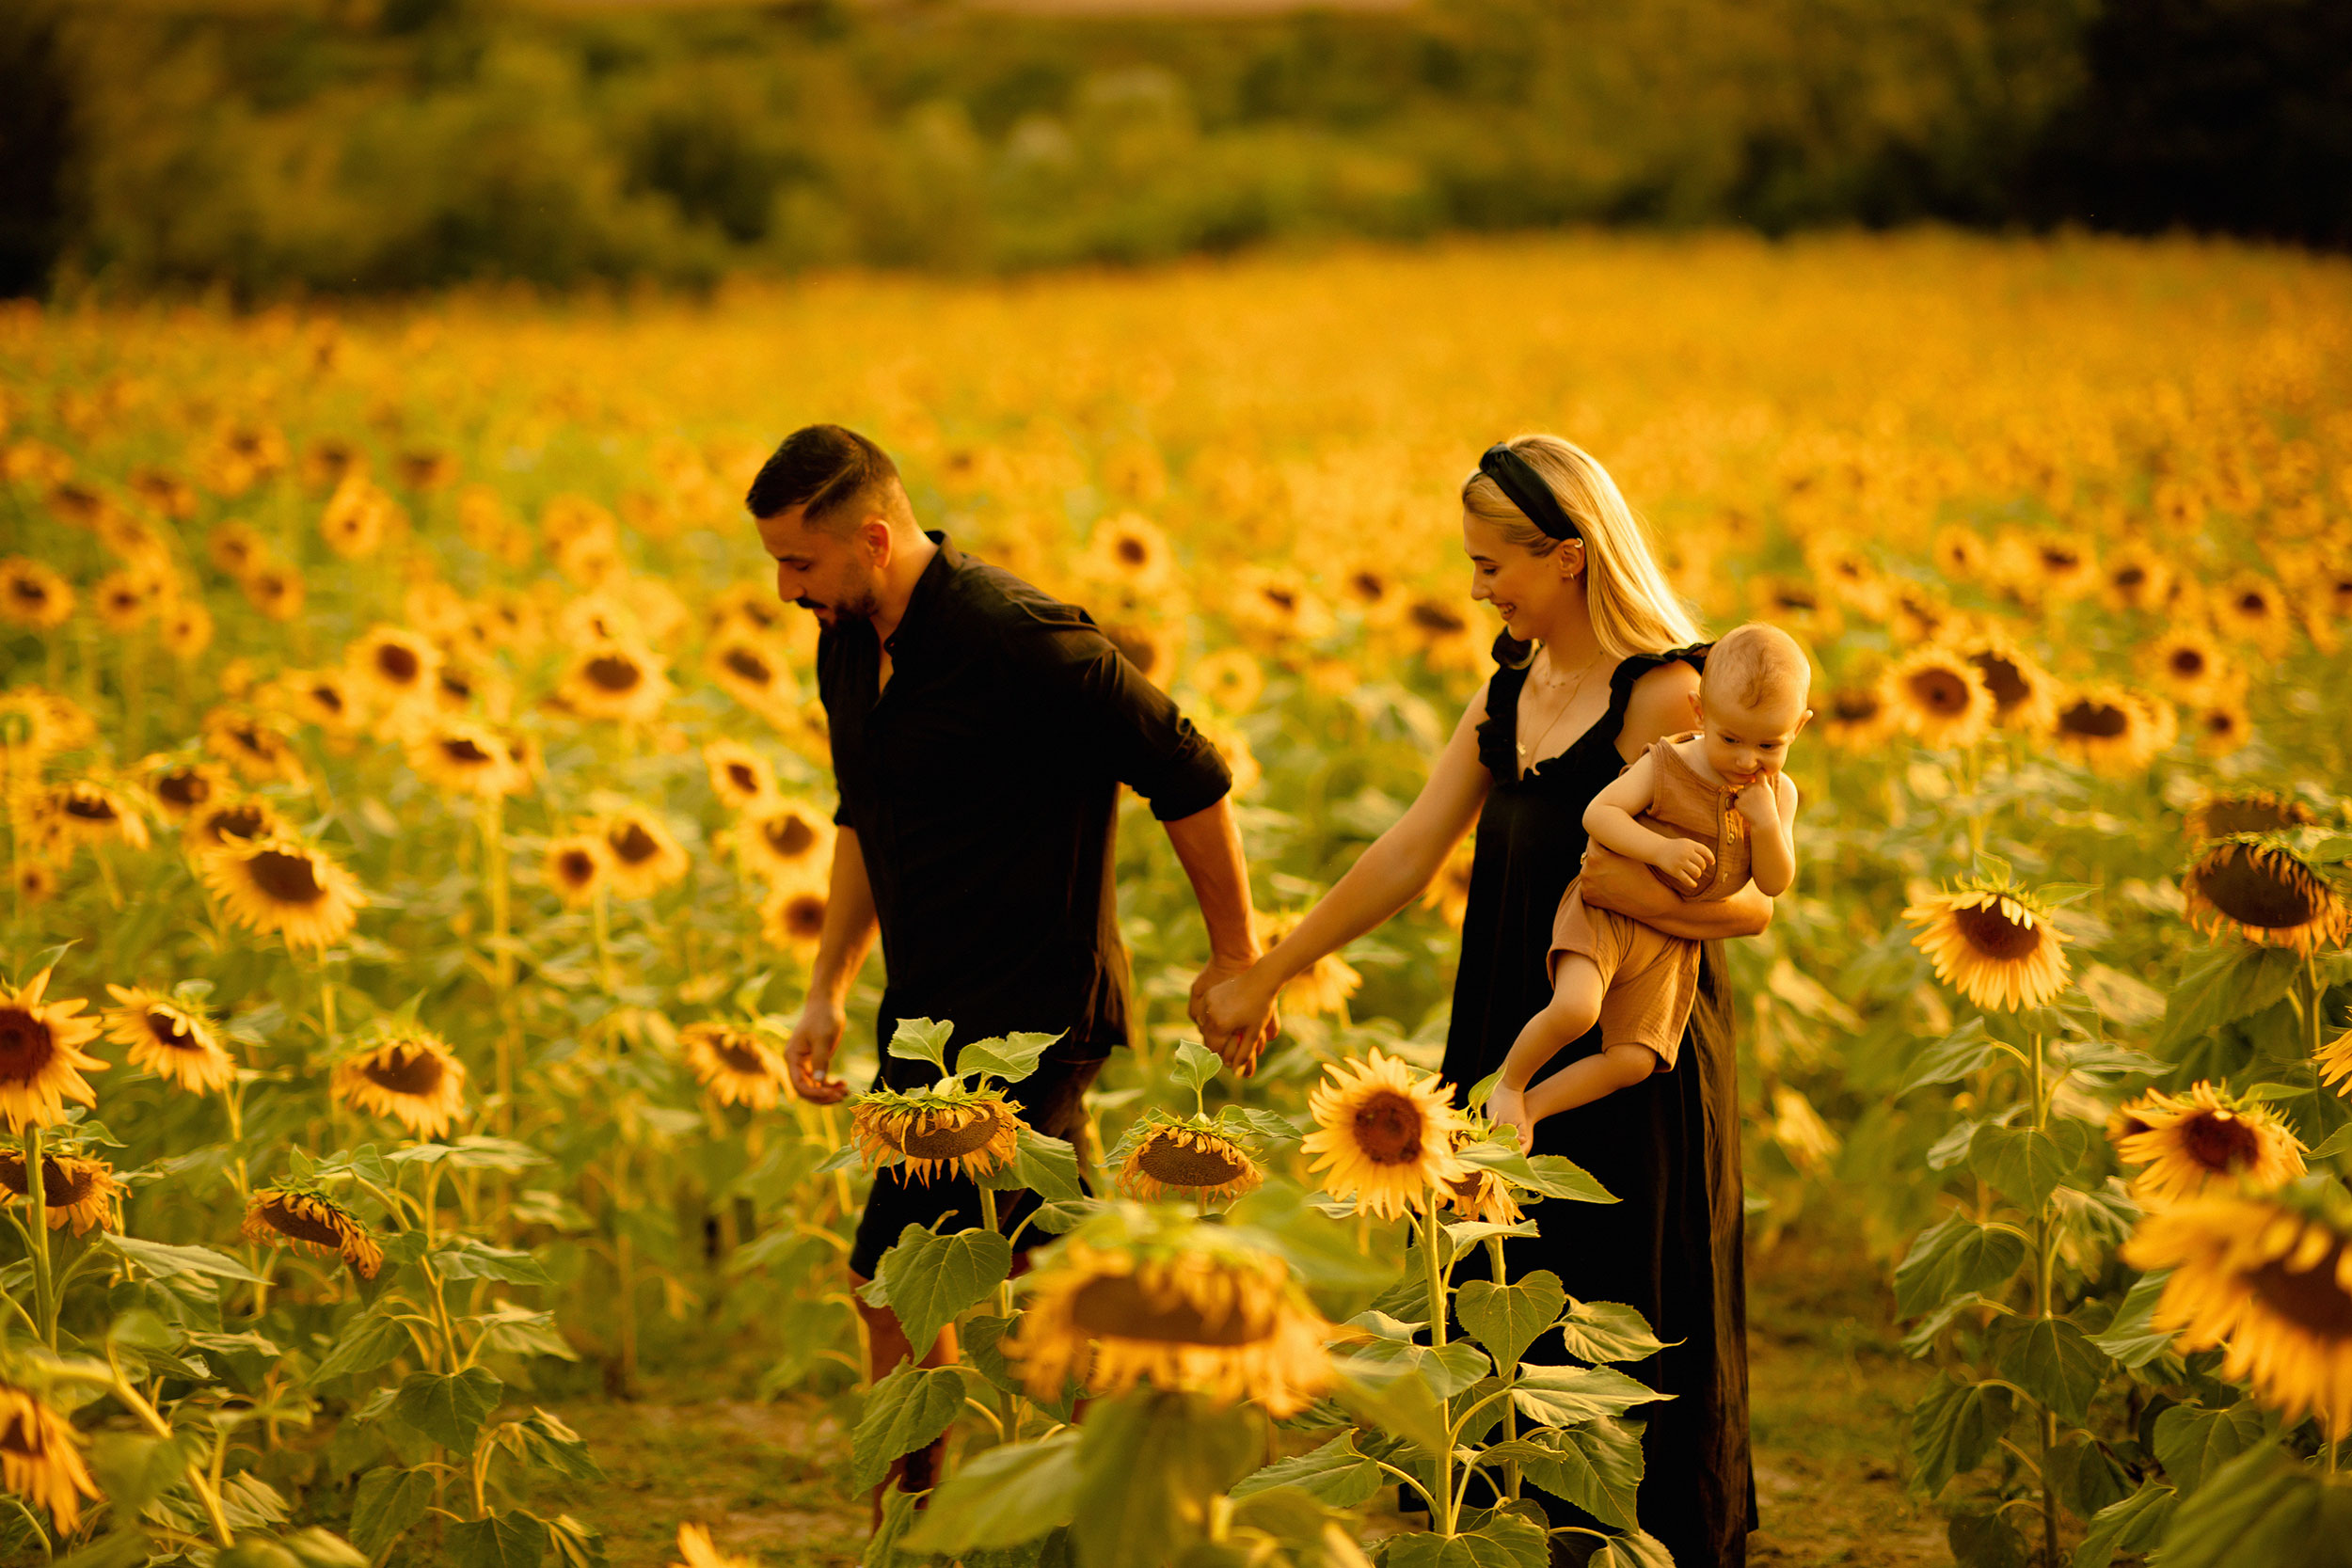 The beautiful couple holding hands and their baby in a sunflower field